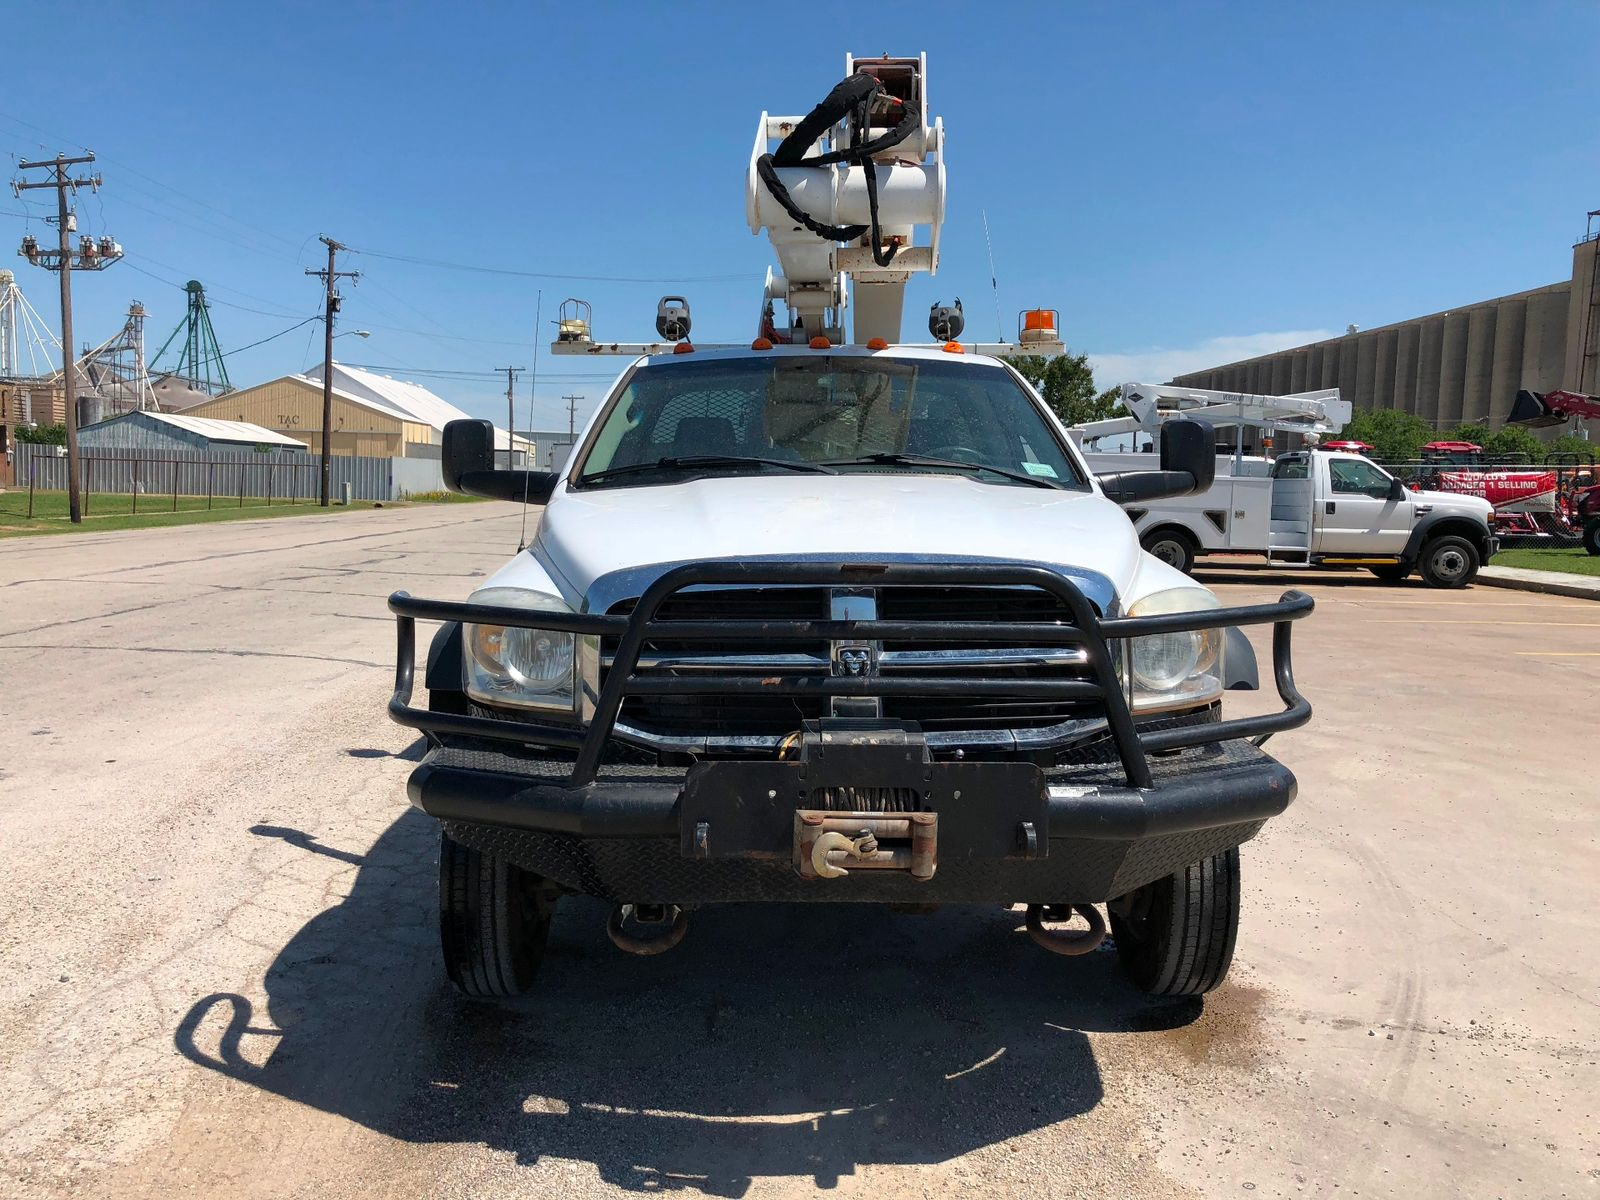 county imgur charger office juthpus texas policevehicles sheriff victoria s r dodge